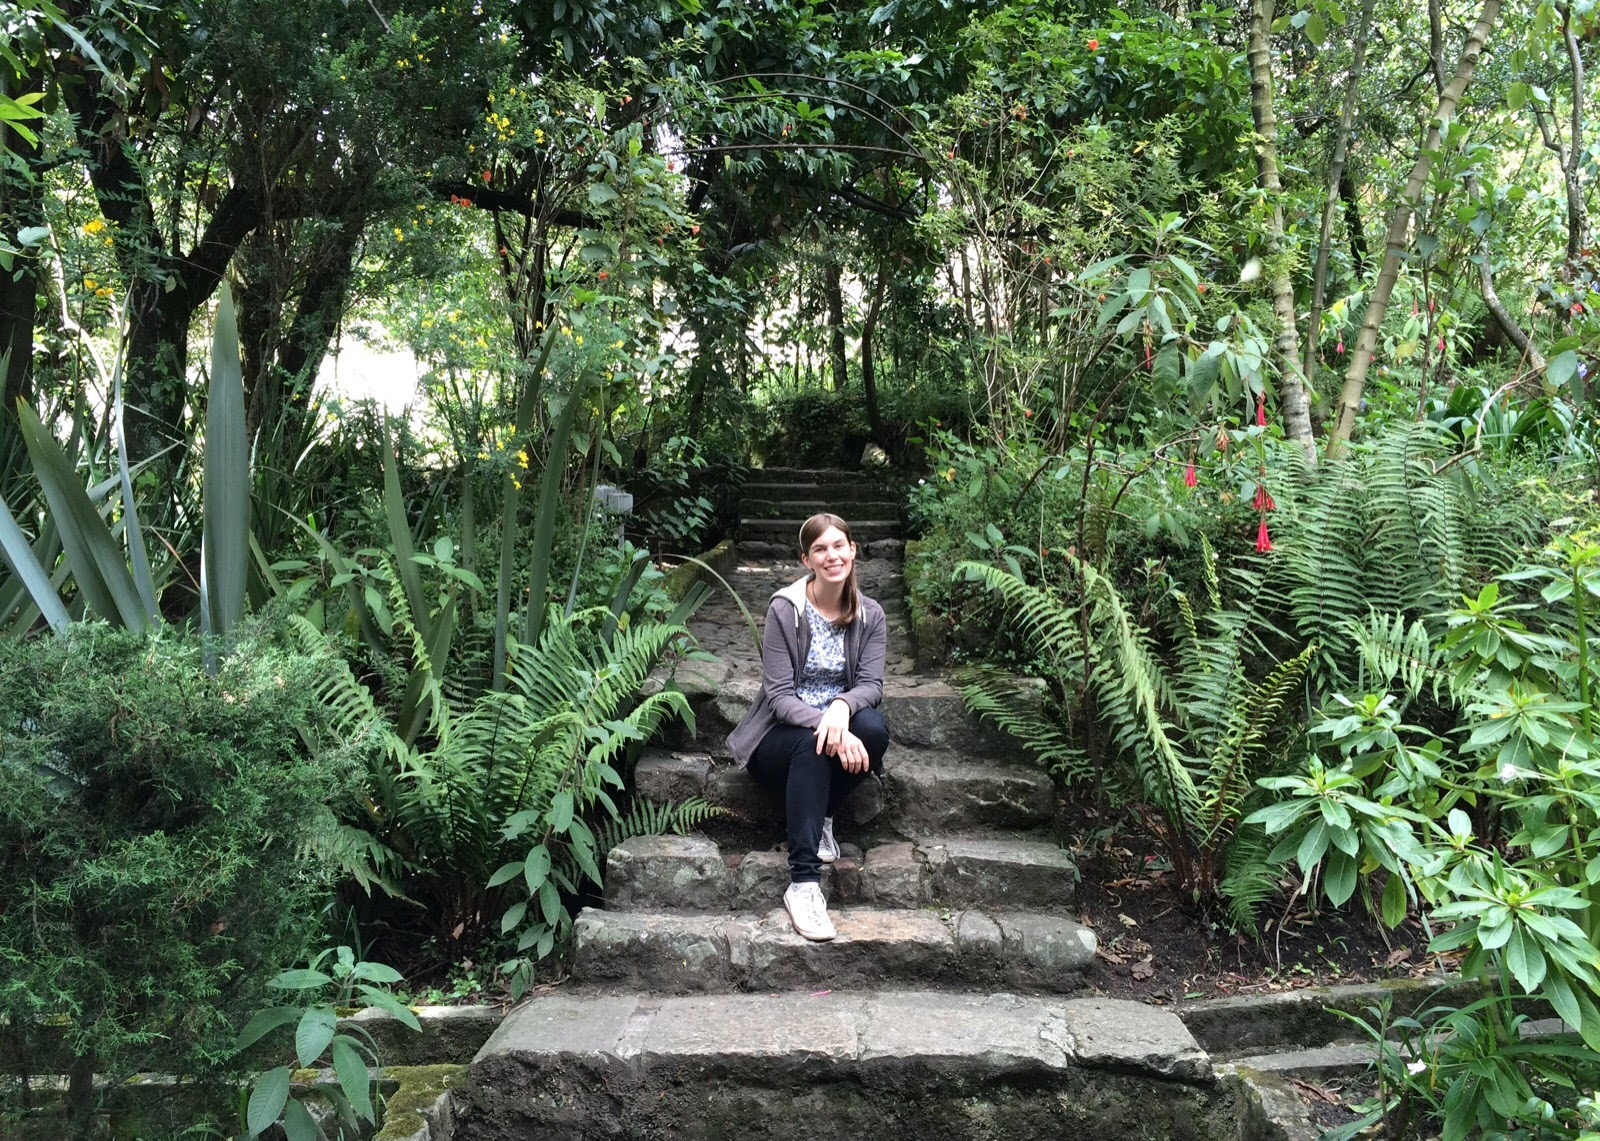 Sat in Bolívars Garden in Botogá, Colombia